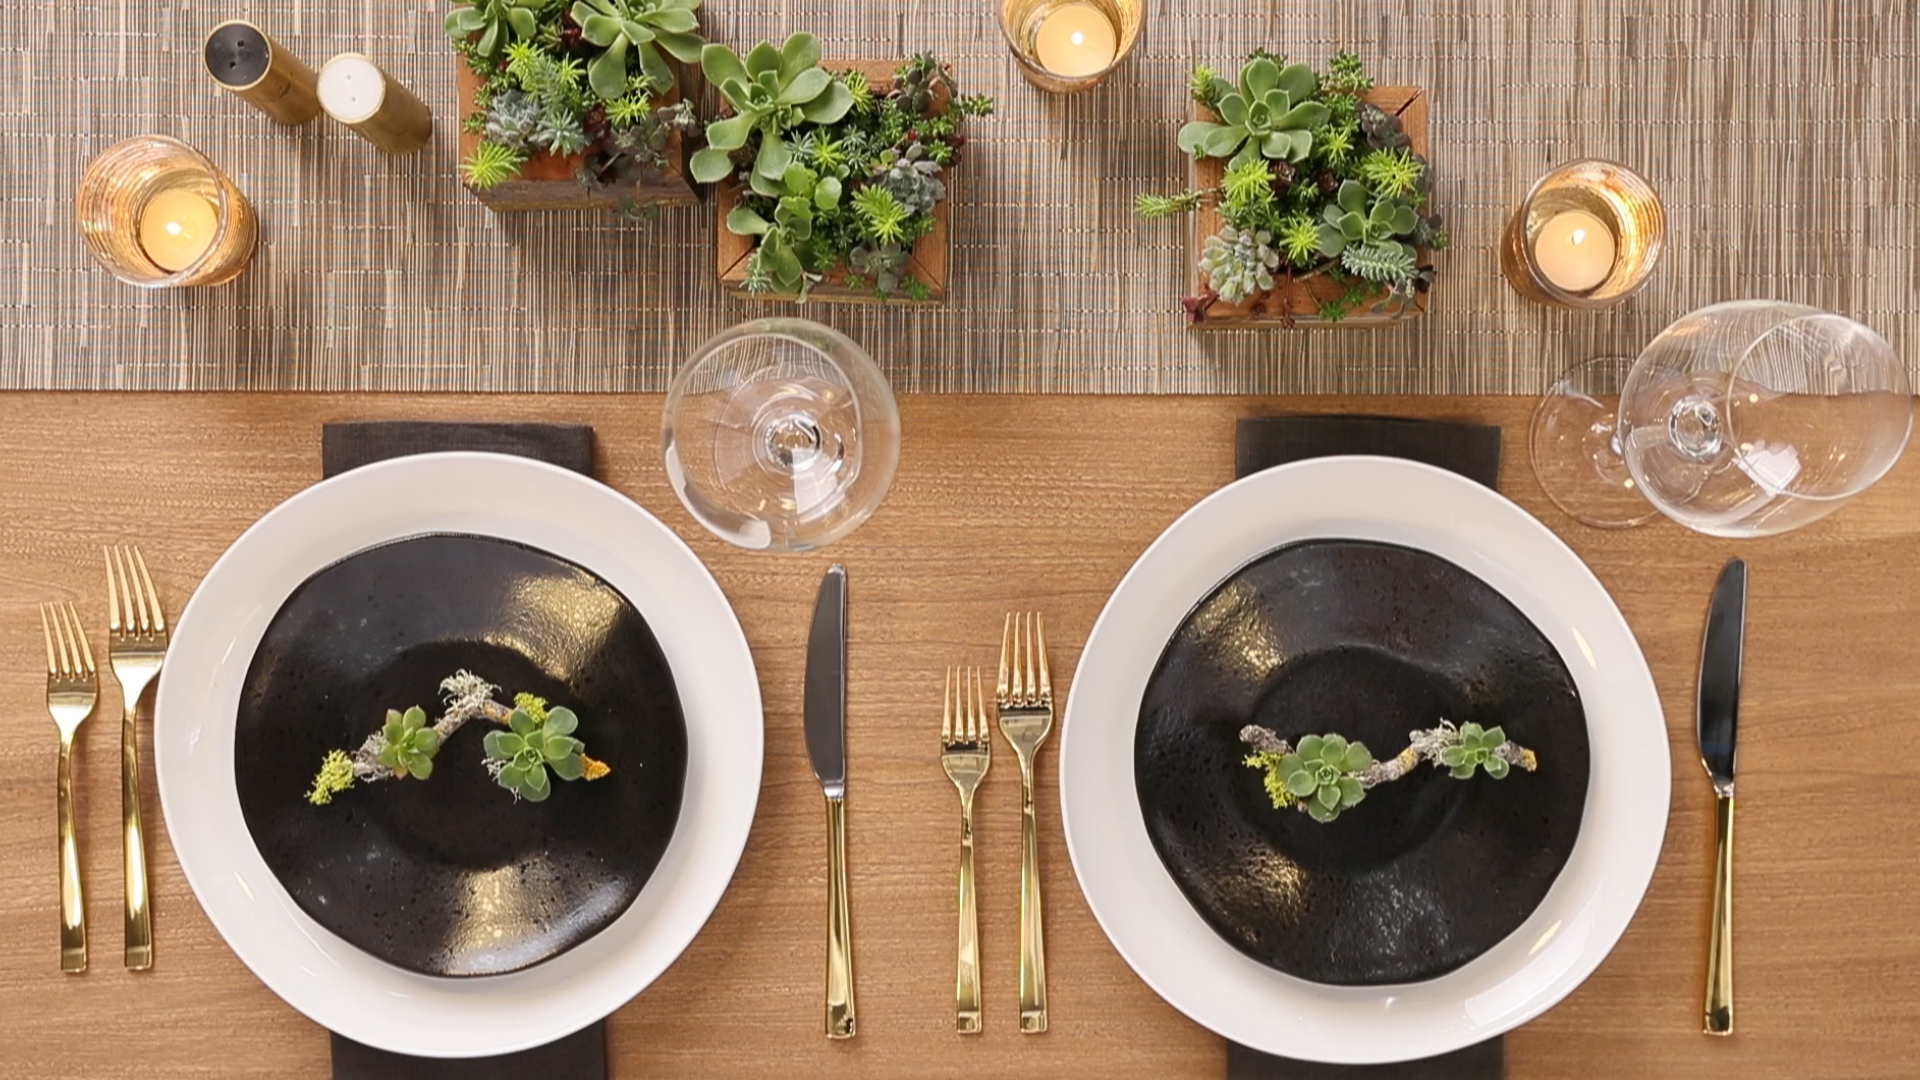 How to Make Succulent Place Settings